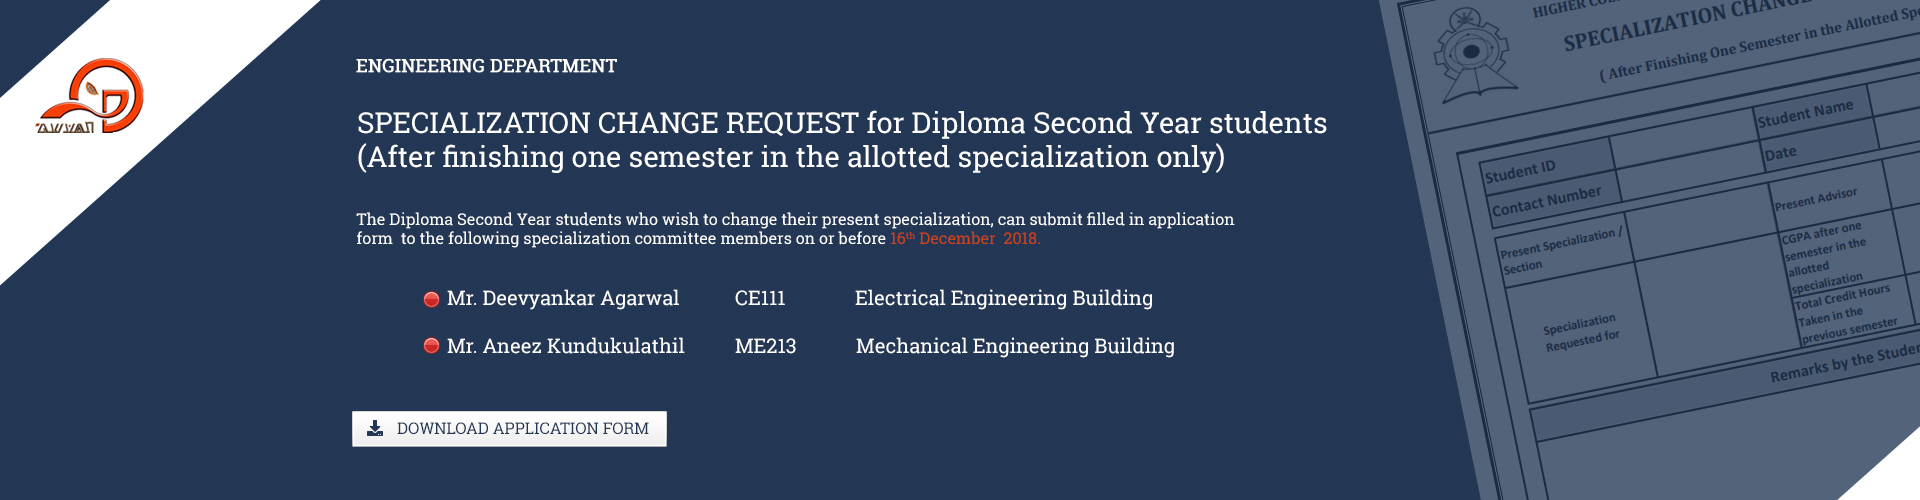 Engineering Department - Specialization Change Request for Diploma Second Year students (after finishing one semester in the allotted specialization only)